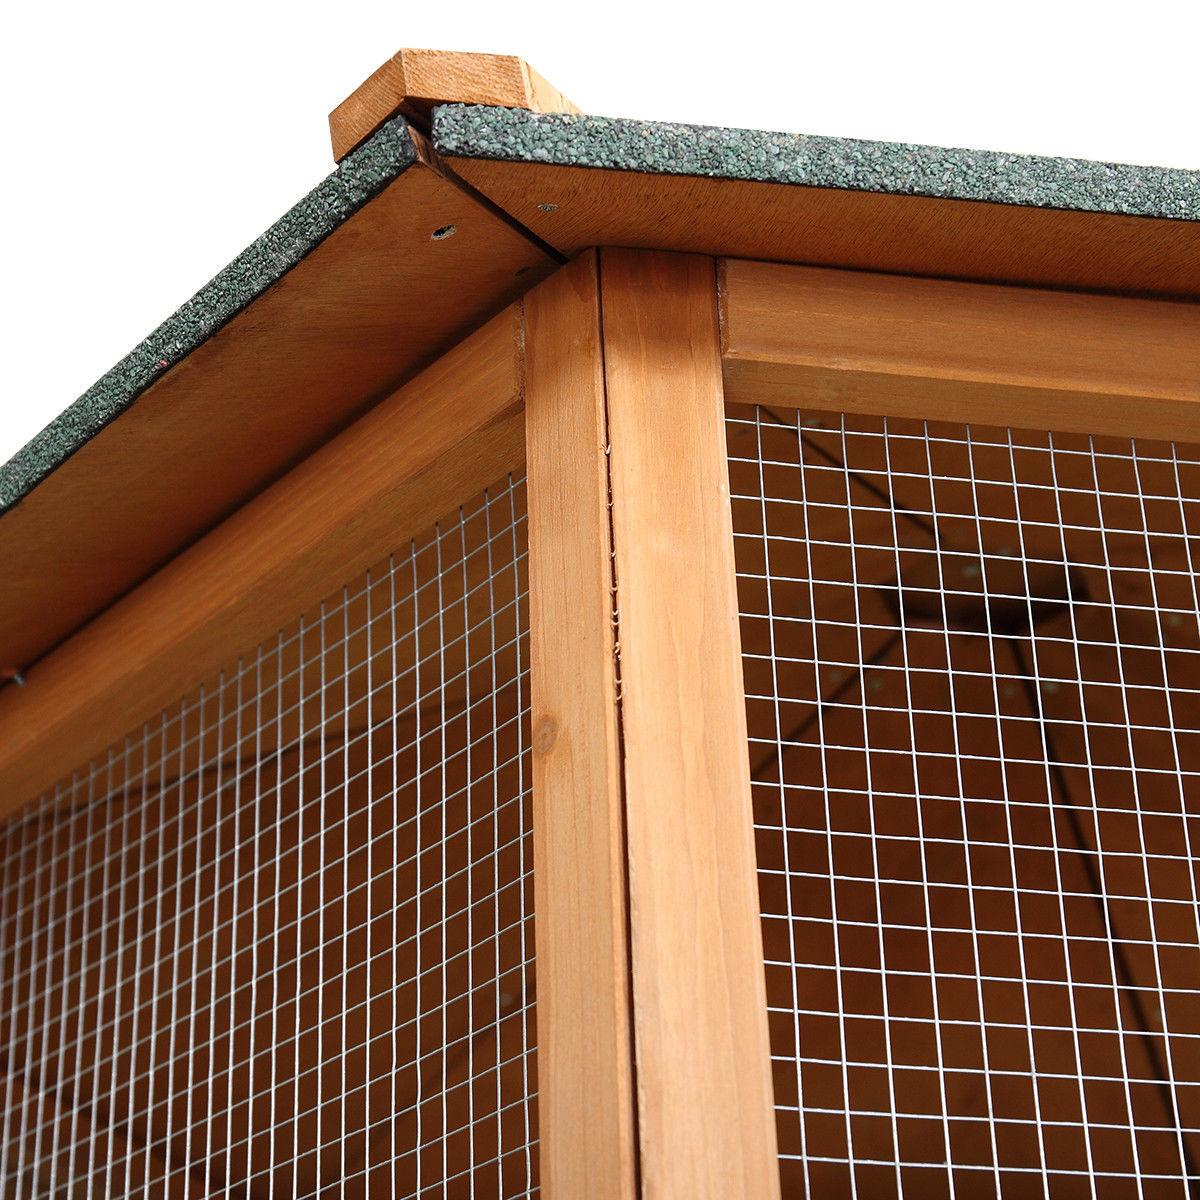 Wooden Cage Aviary Play Top House